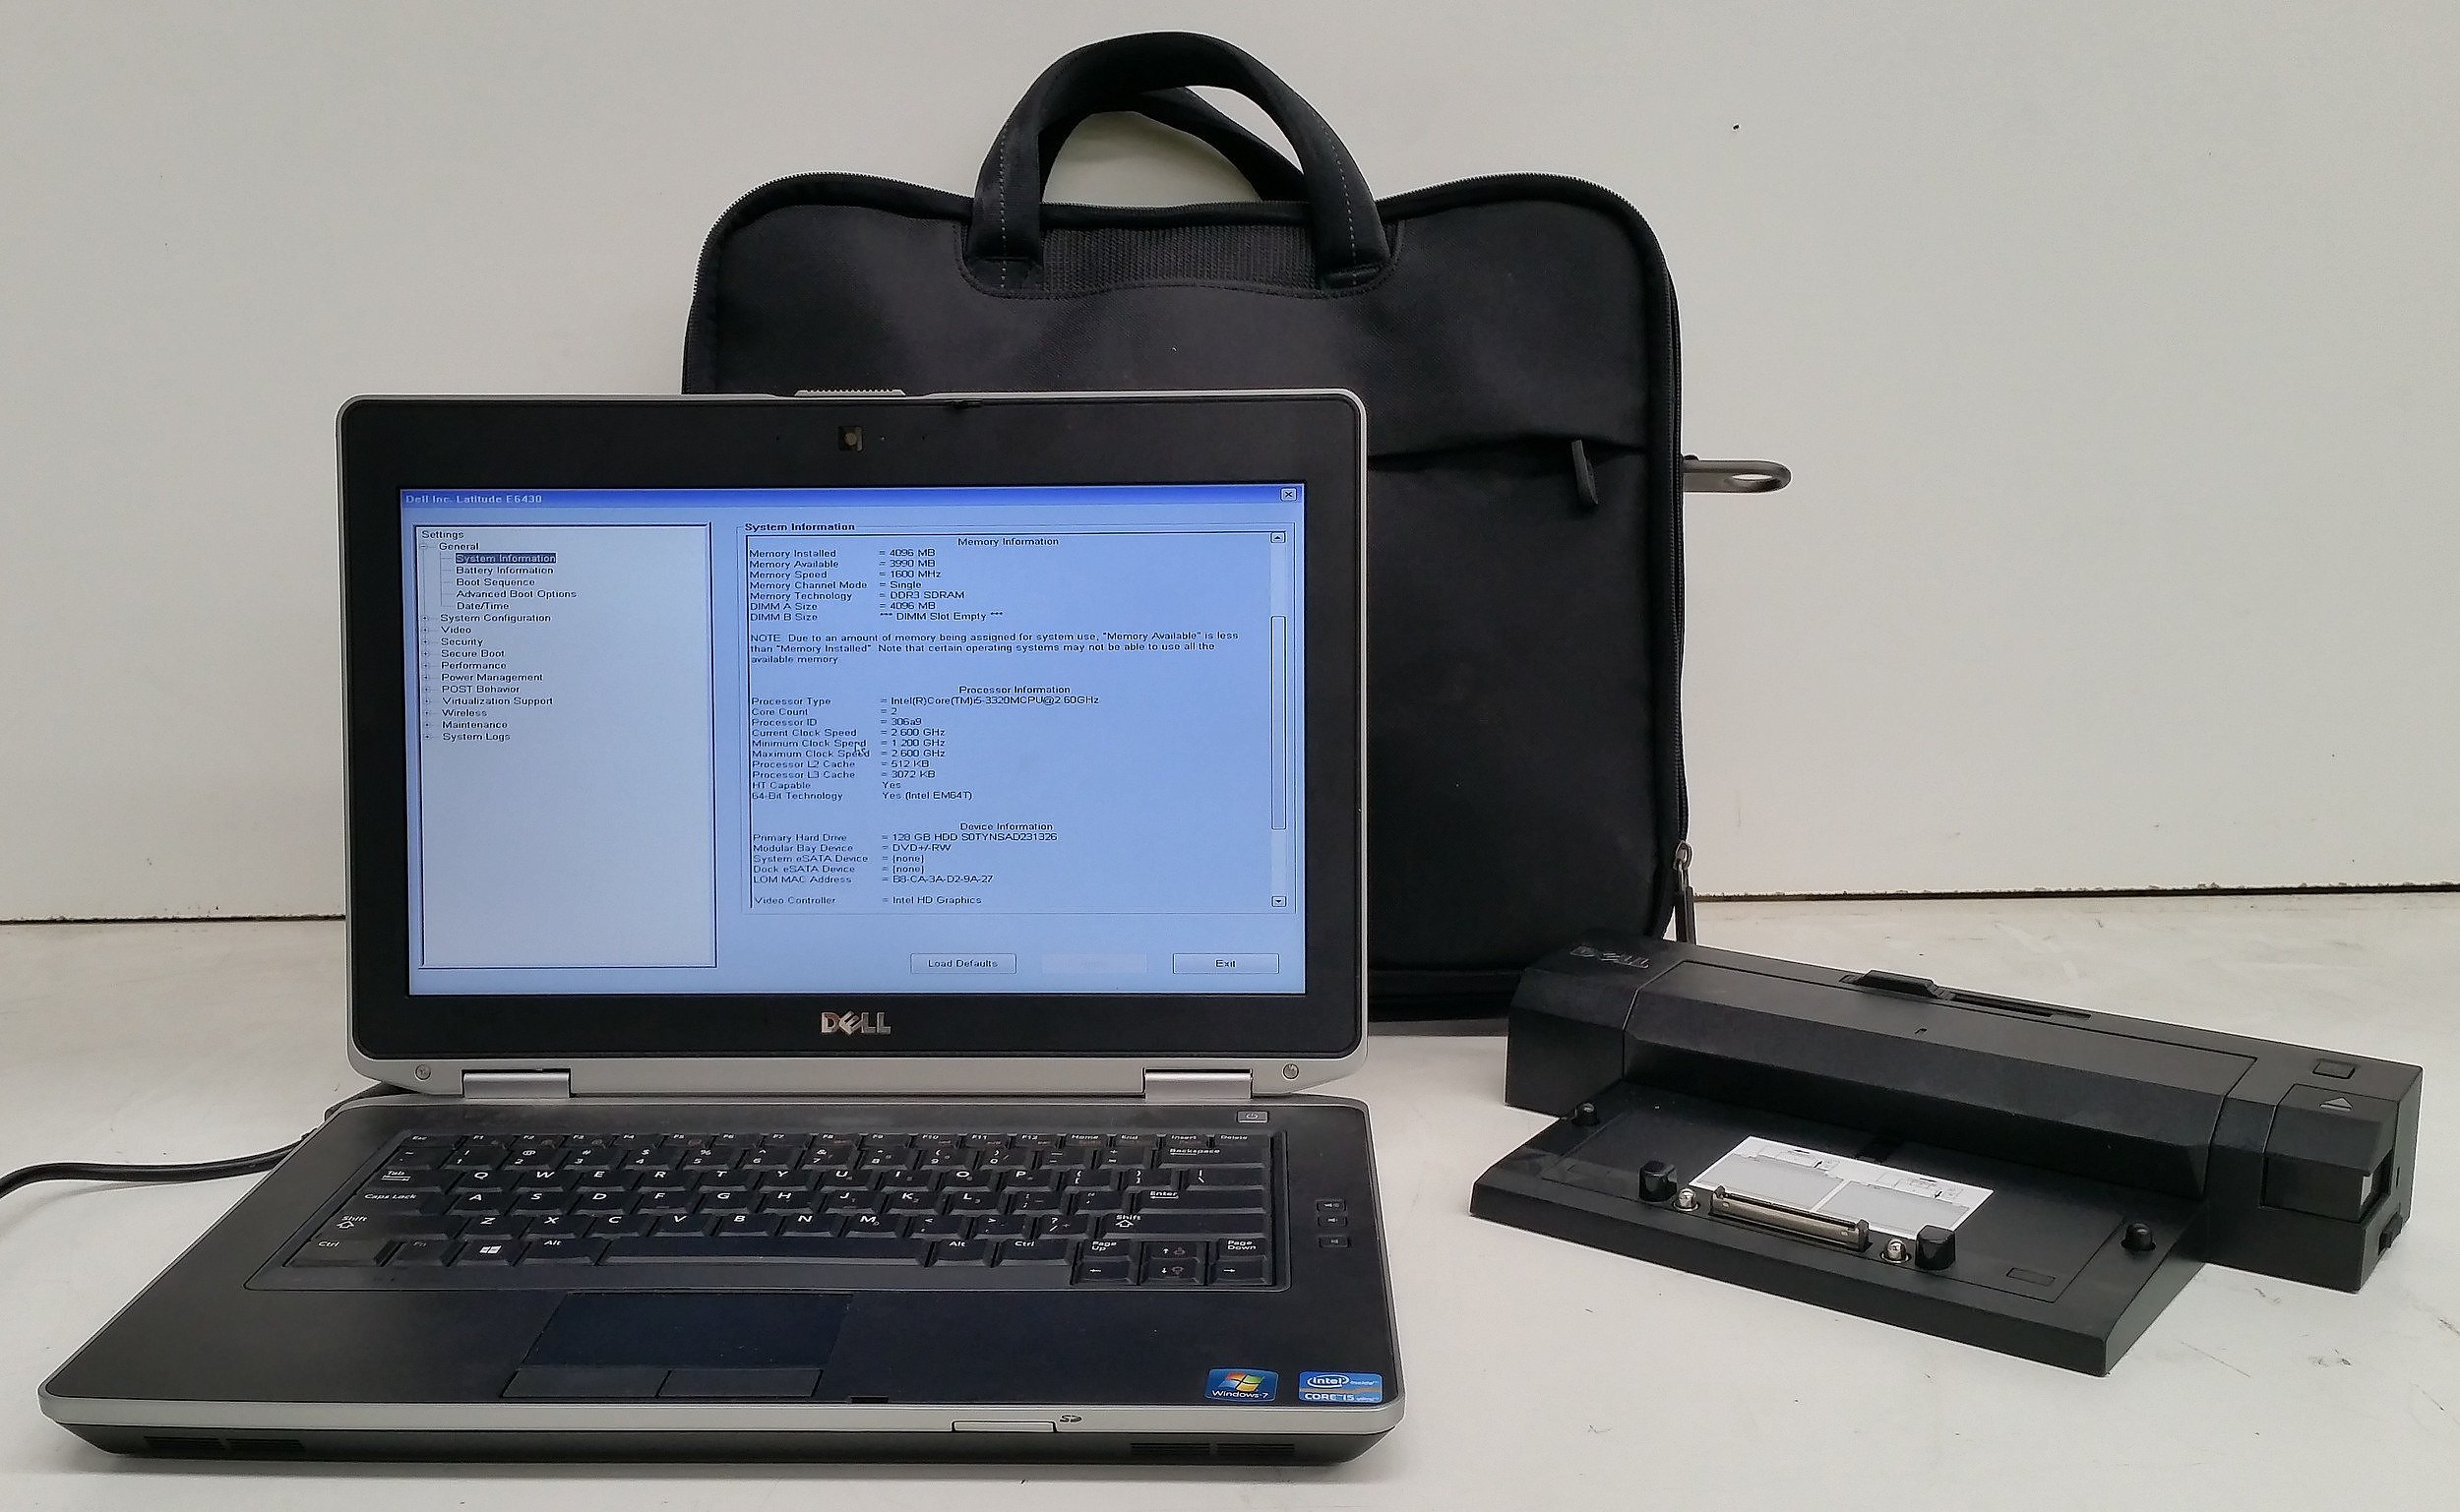 Dell Latitude E6430 14-Inch Core i5 (3320M) 2 60GHz Laptop